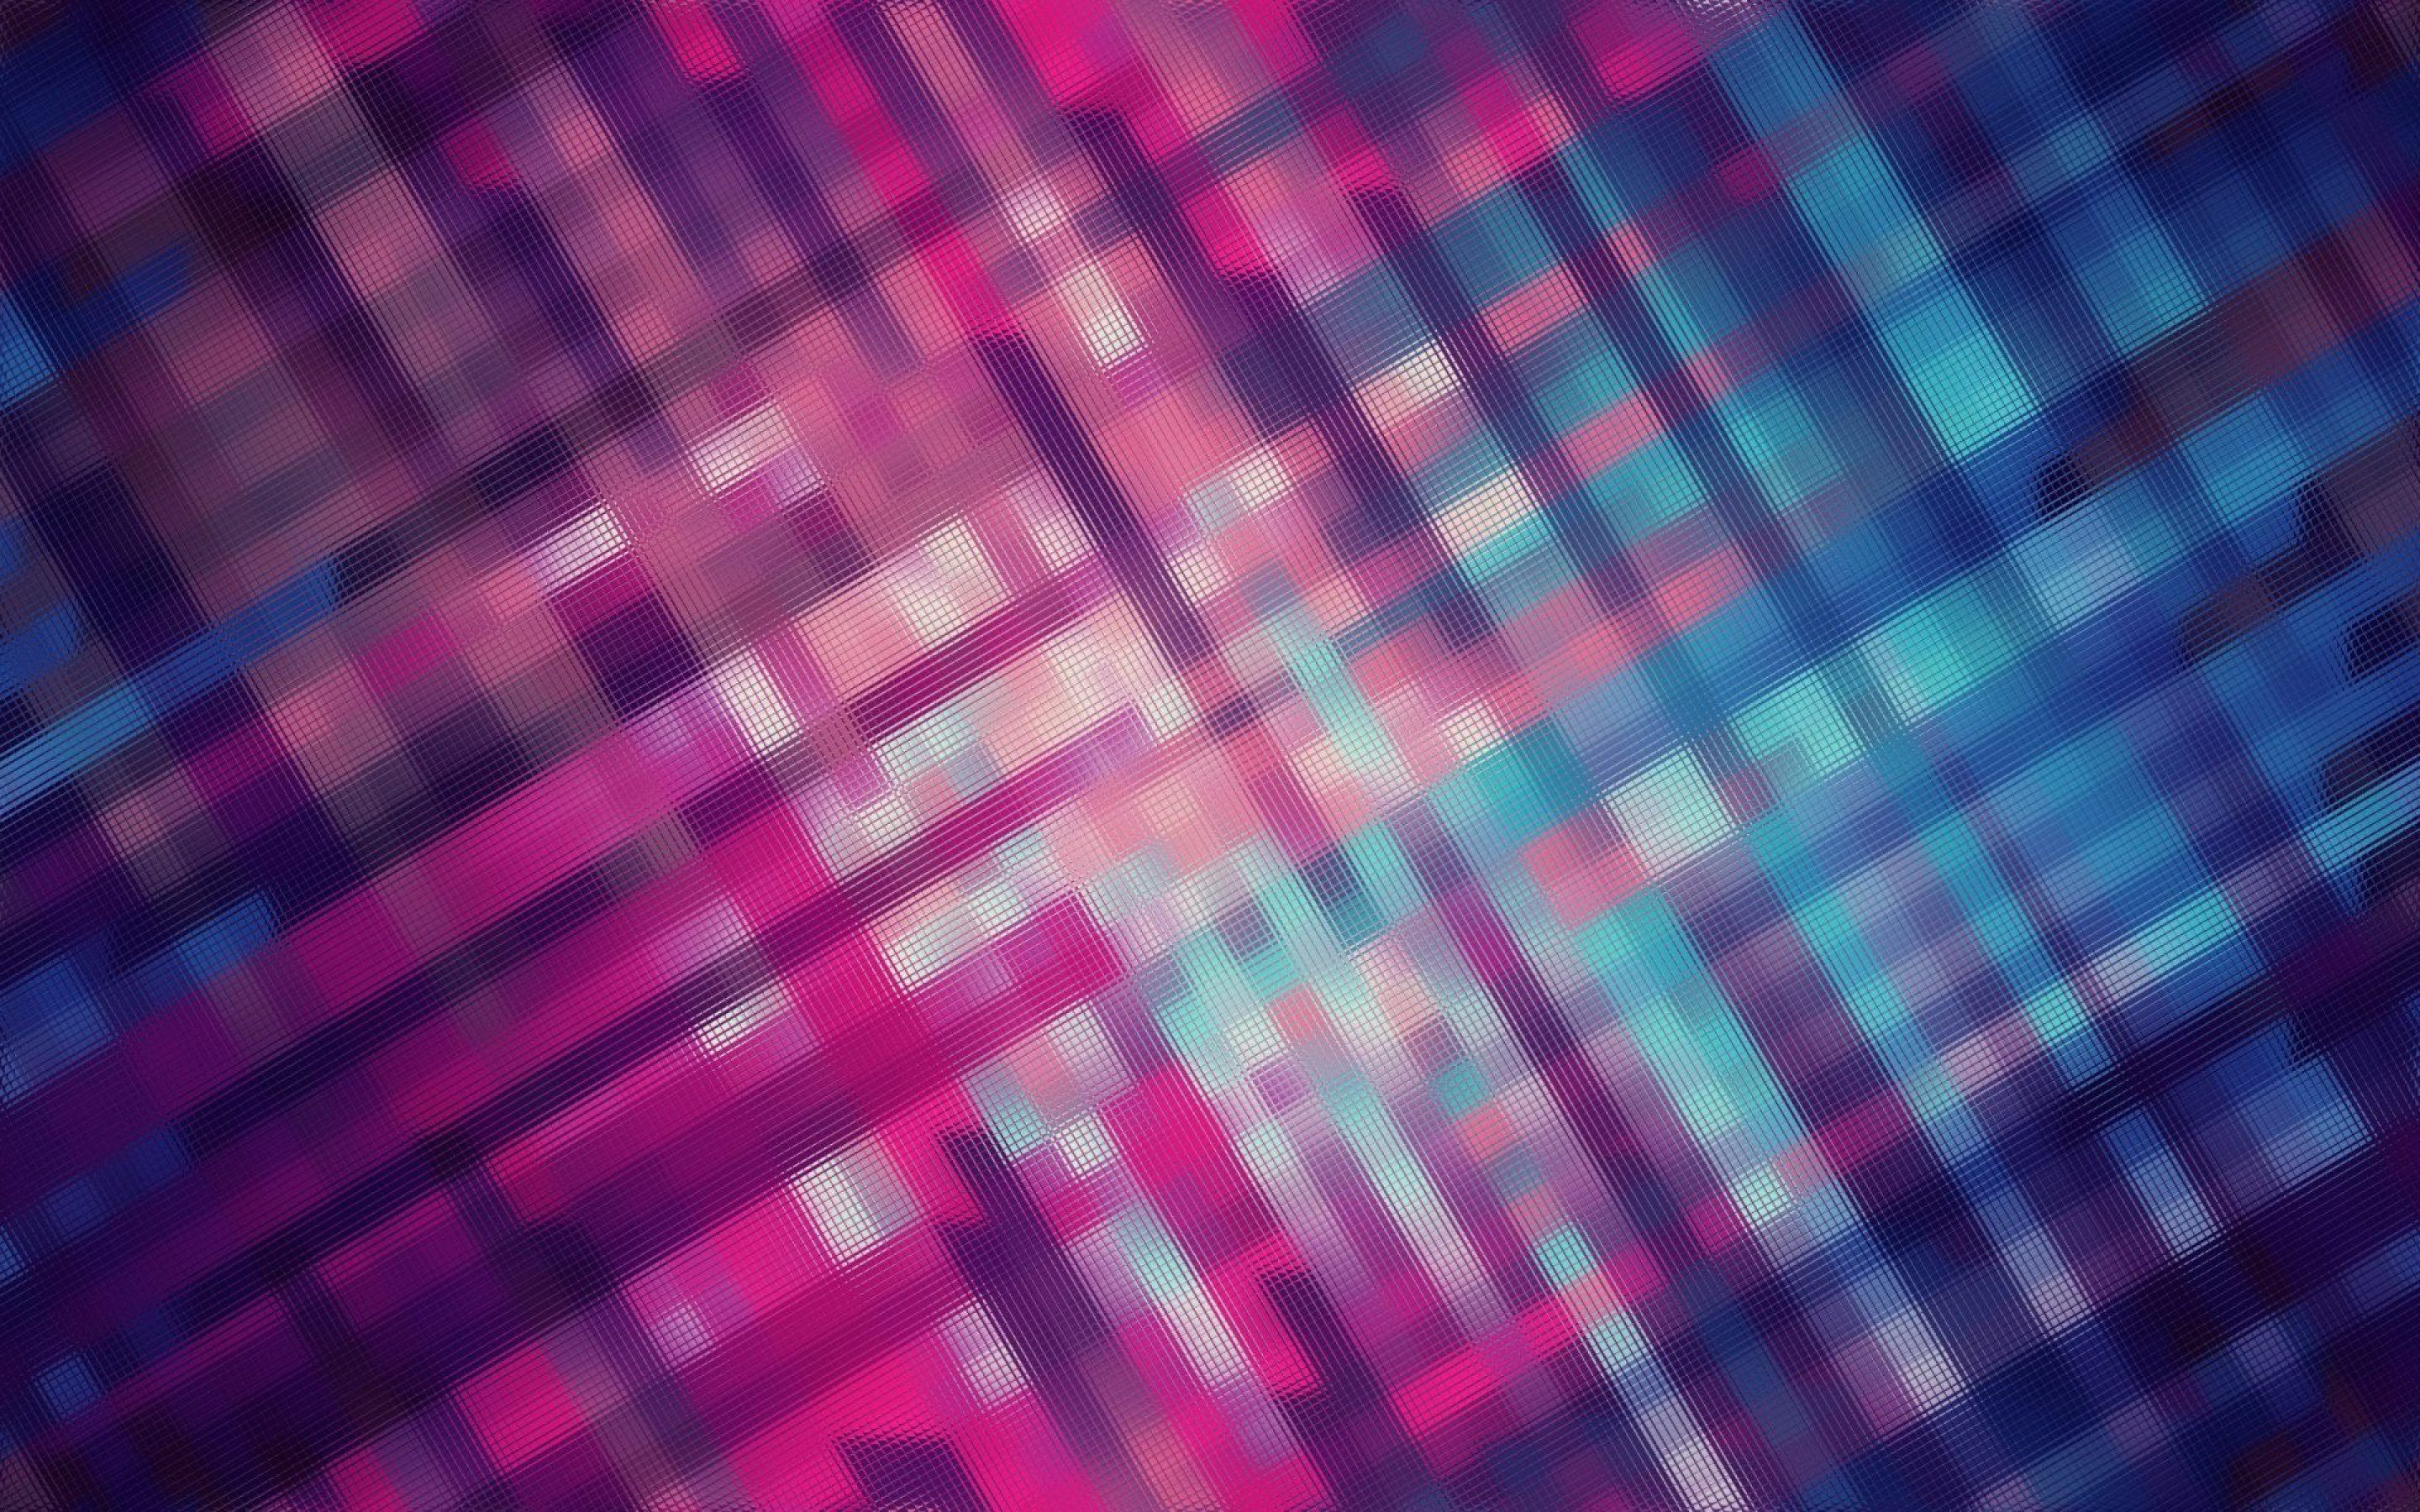 abstract, Blurred Wallpaper